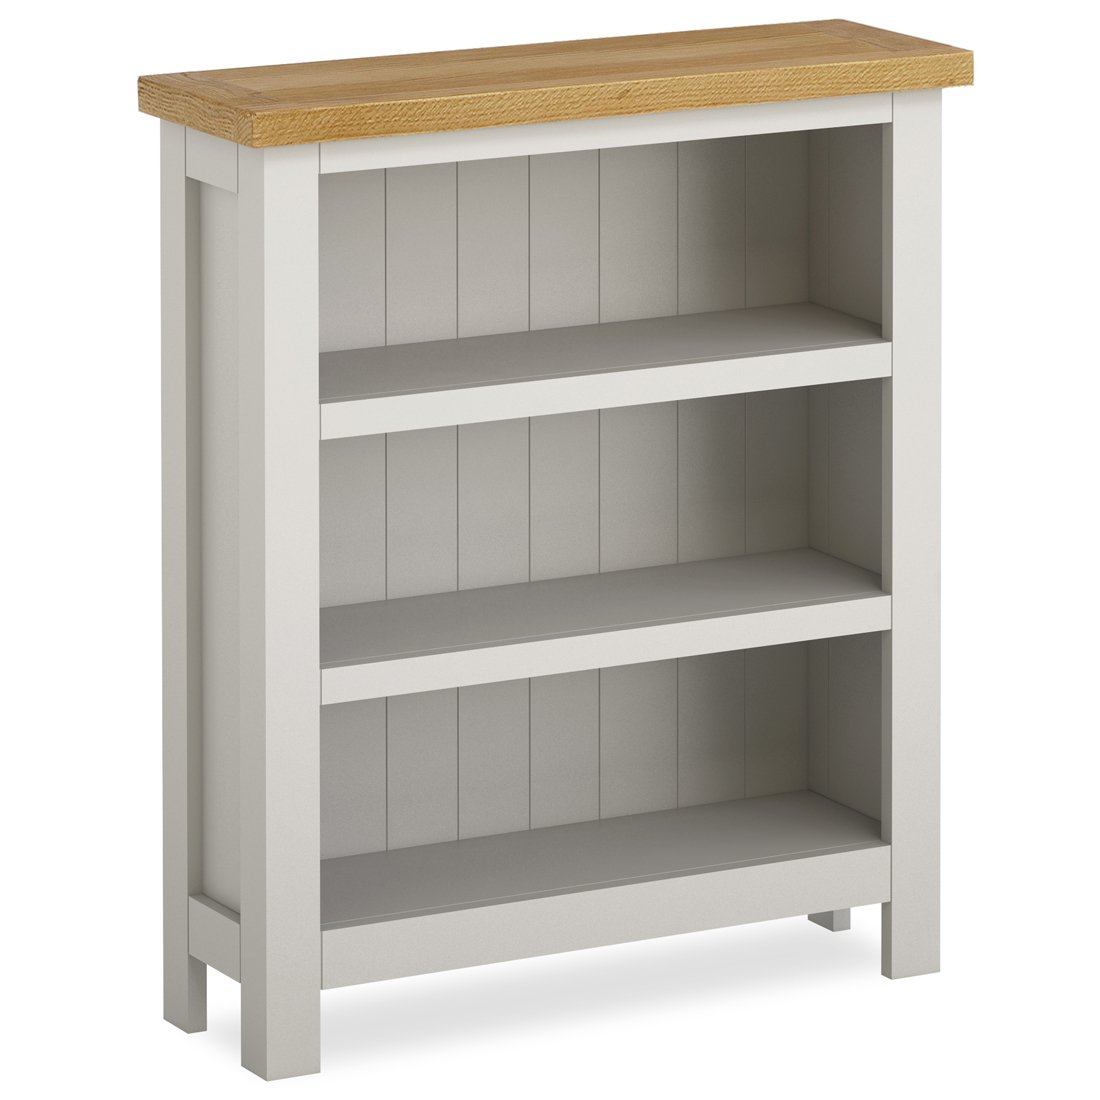 Farrow Grey Painted Low Bookcase - Small Bookshelf Roseland Furniture